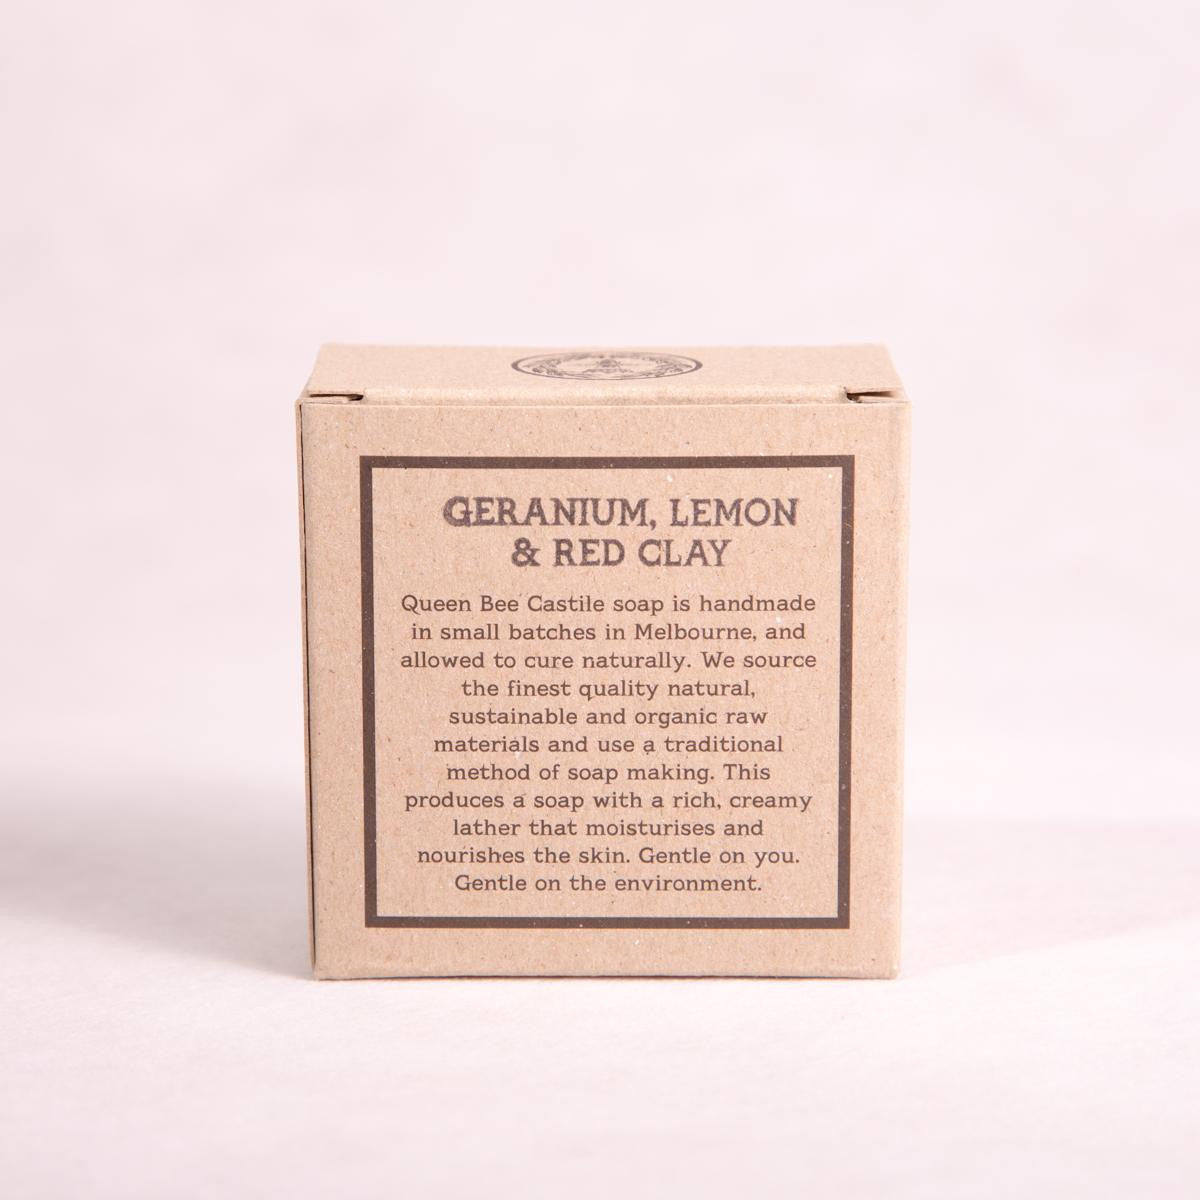 Rose Geranium, Lemon, & Red Clay Bar Soap - 135g - Bar Soap - Throw Some Seeds - Australian gardening gifts and eco products online!